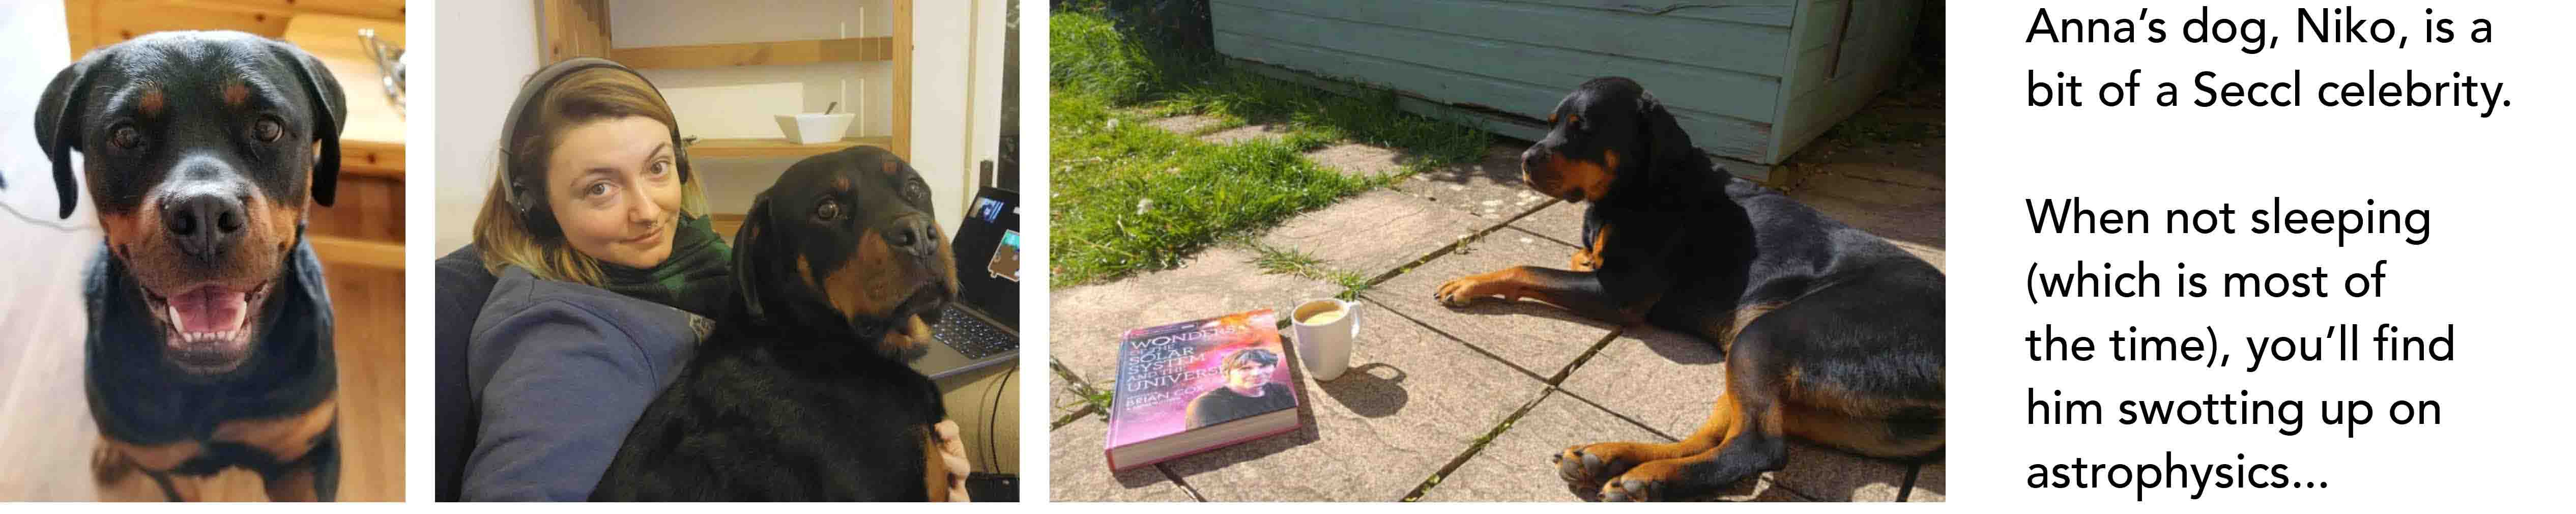 Anna's dog, Niko, is a bit of a Seccl celebrity. When not sleeping (which is most of the time), you'll find him swotting up on astrophysics...)